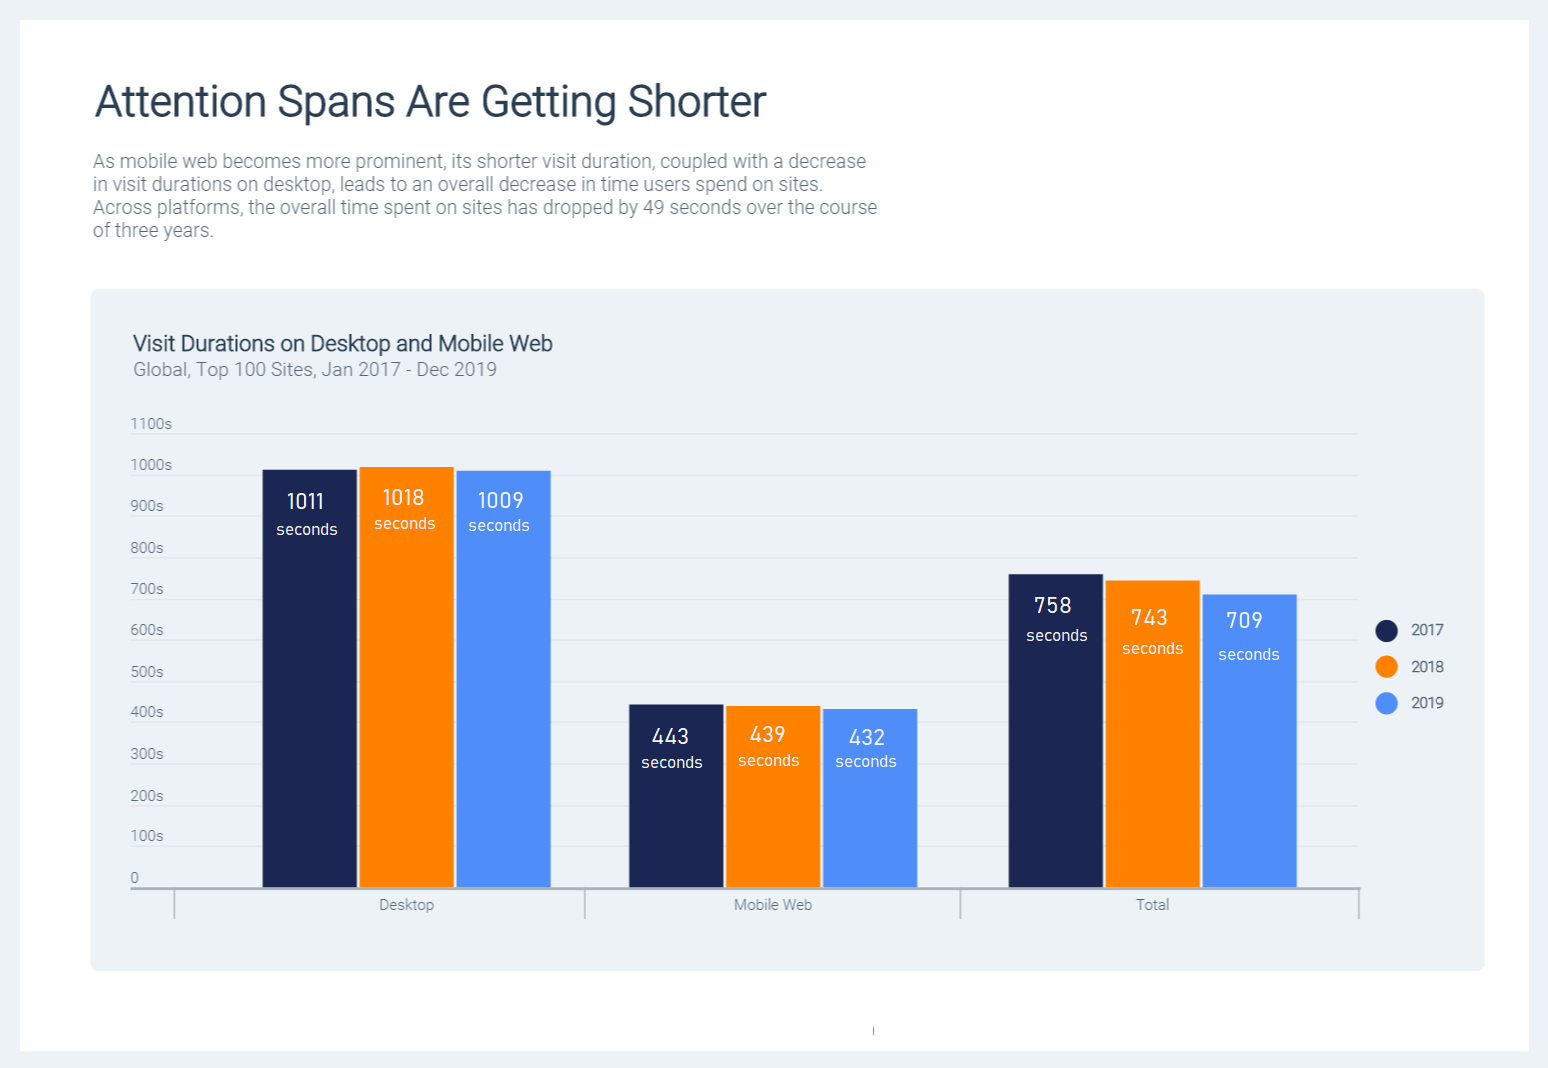 Bar graph showing how attention spans are getting shorter between mobile and desktop